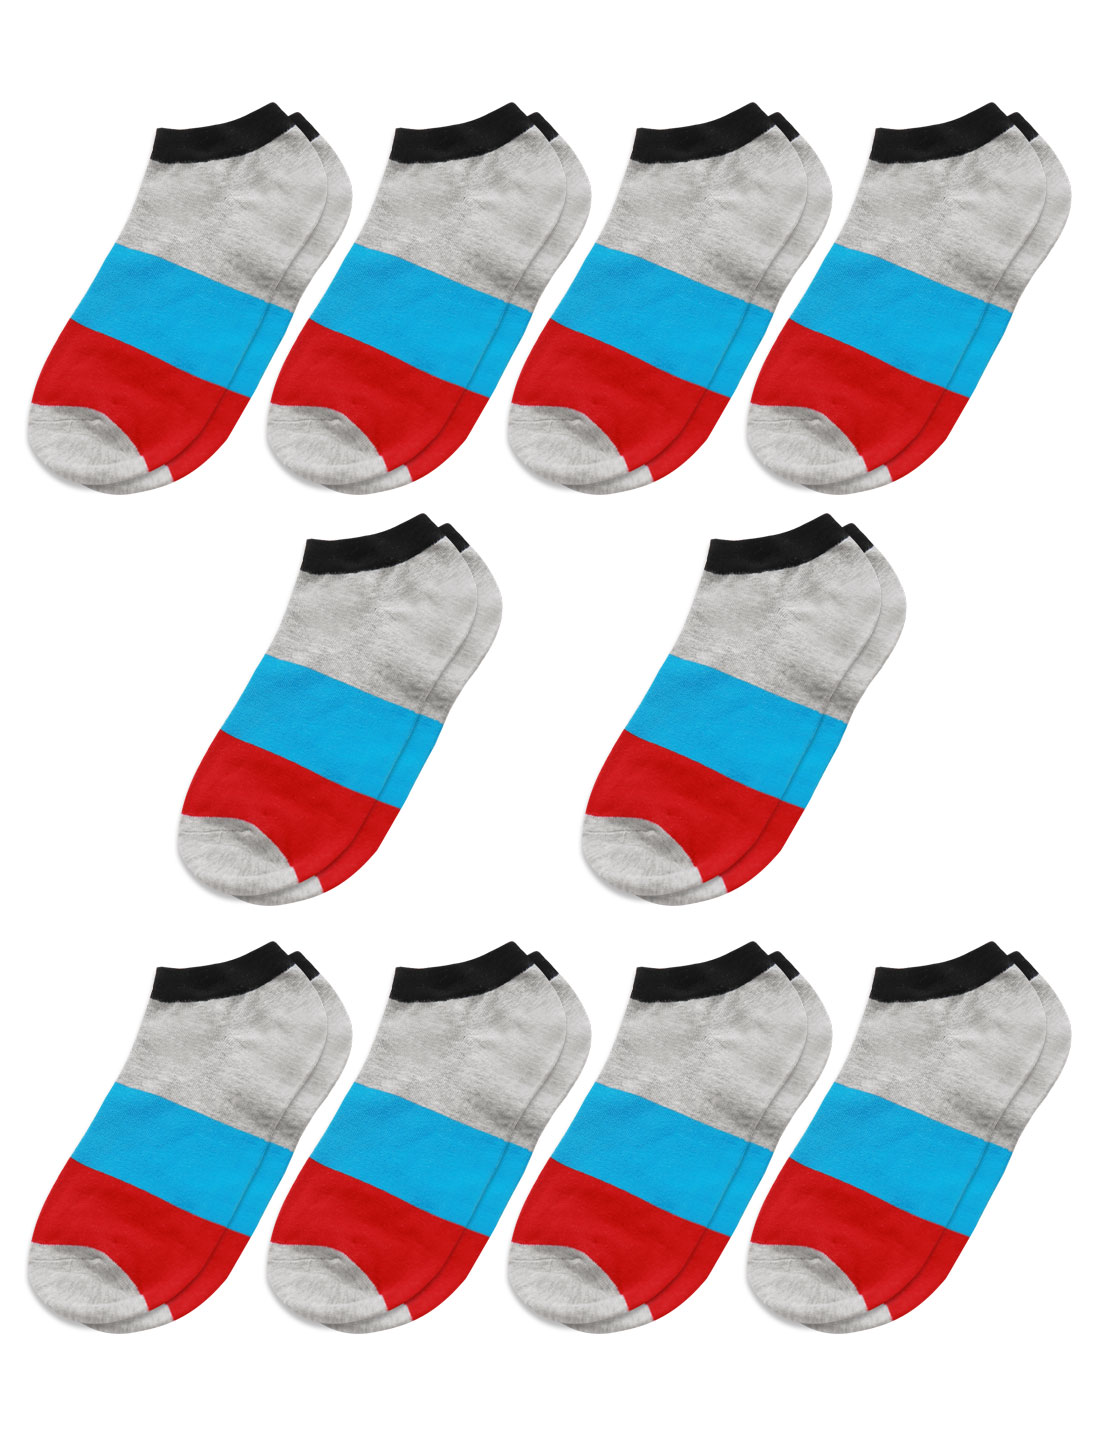 Men Low Cut Ankle Length Color Block Short Socks 10 Pairs Red M